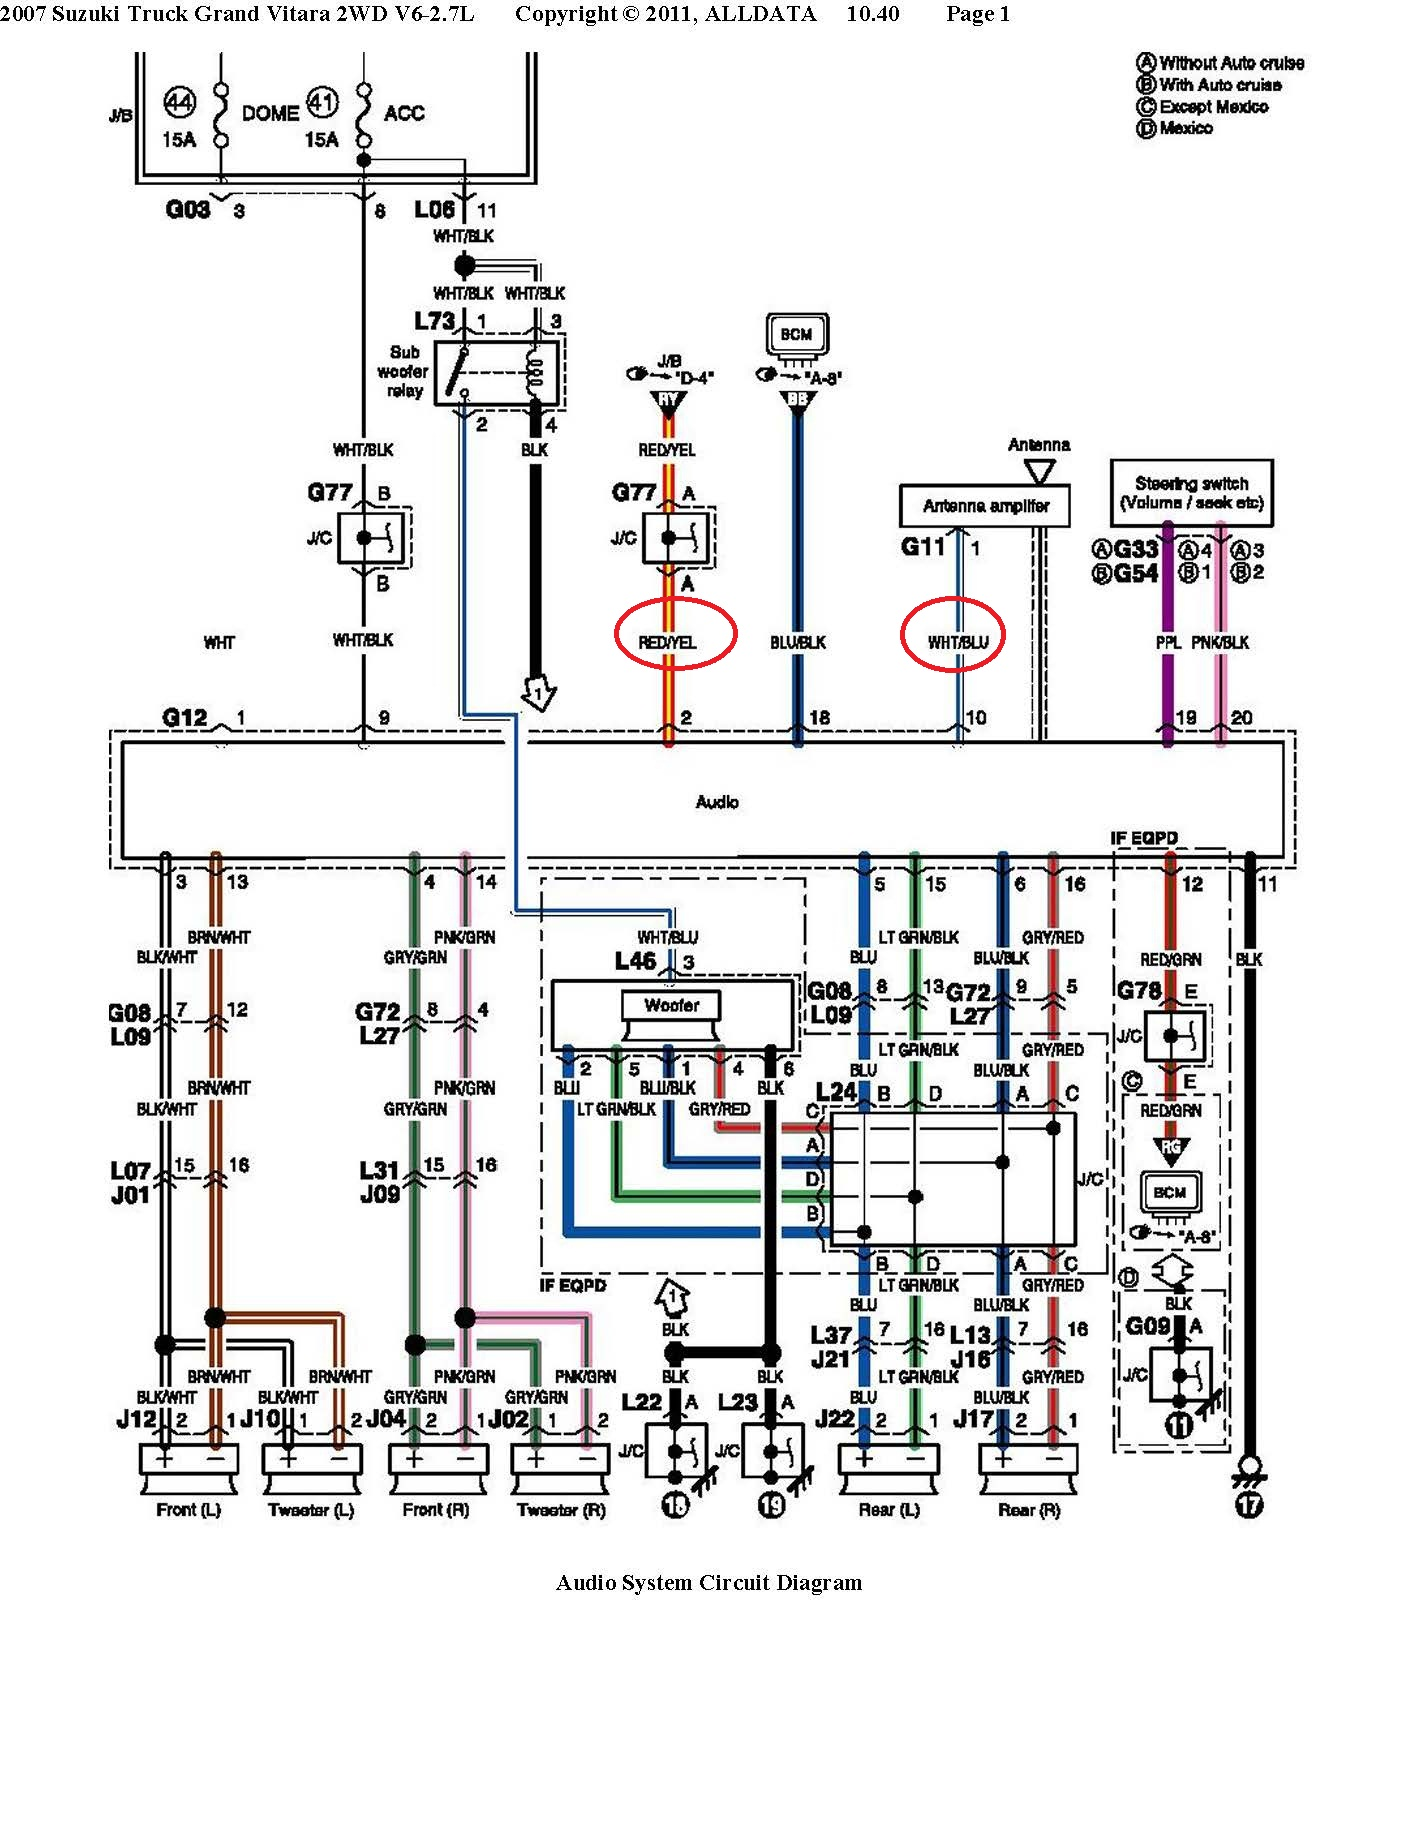 Diagrams Relay Power Dayton Wiring 5yz74n 2010 Suzuki Sx4 Diagram Libraries Third Level2008 Schema